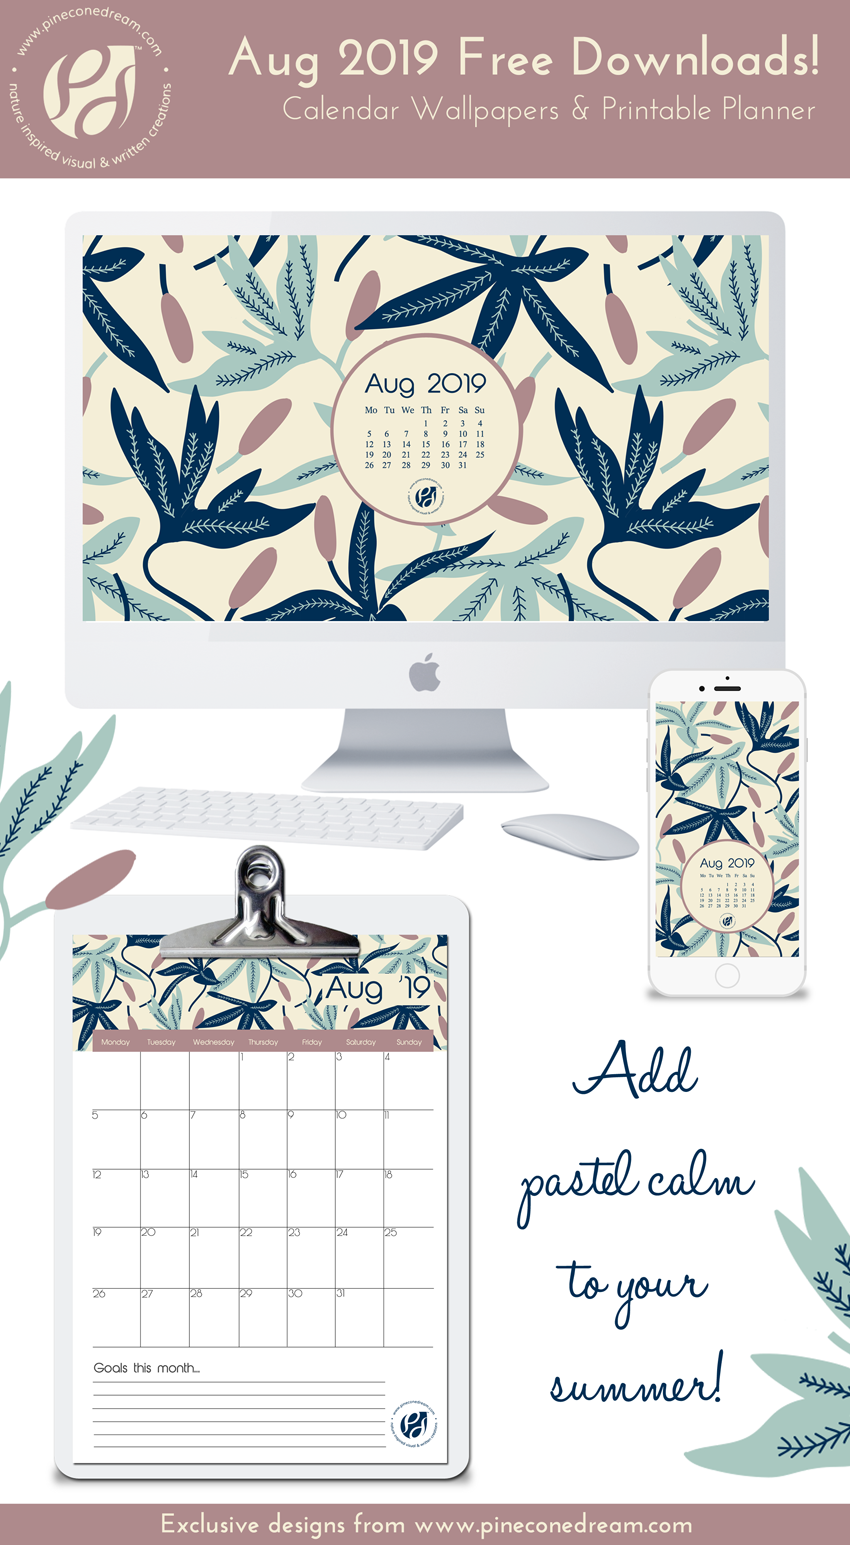 Aug 2019 freebies wallpapers